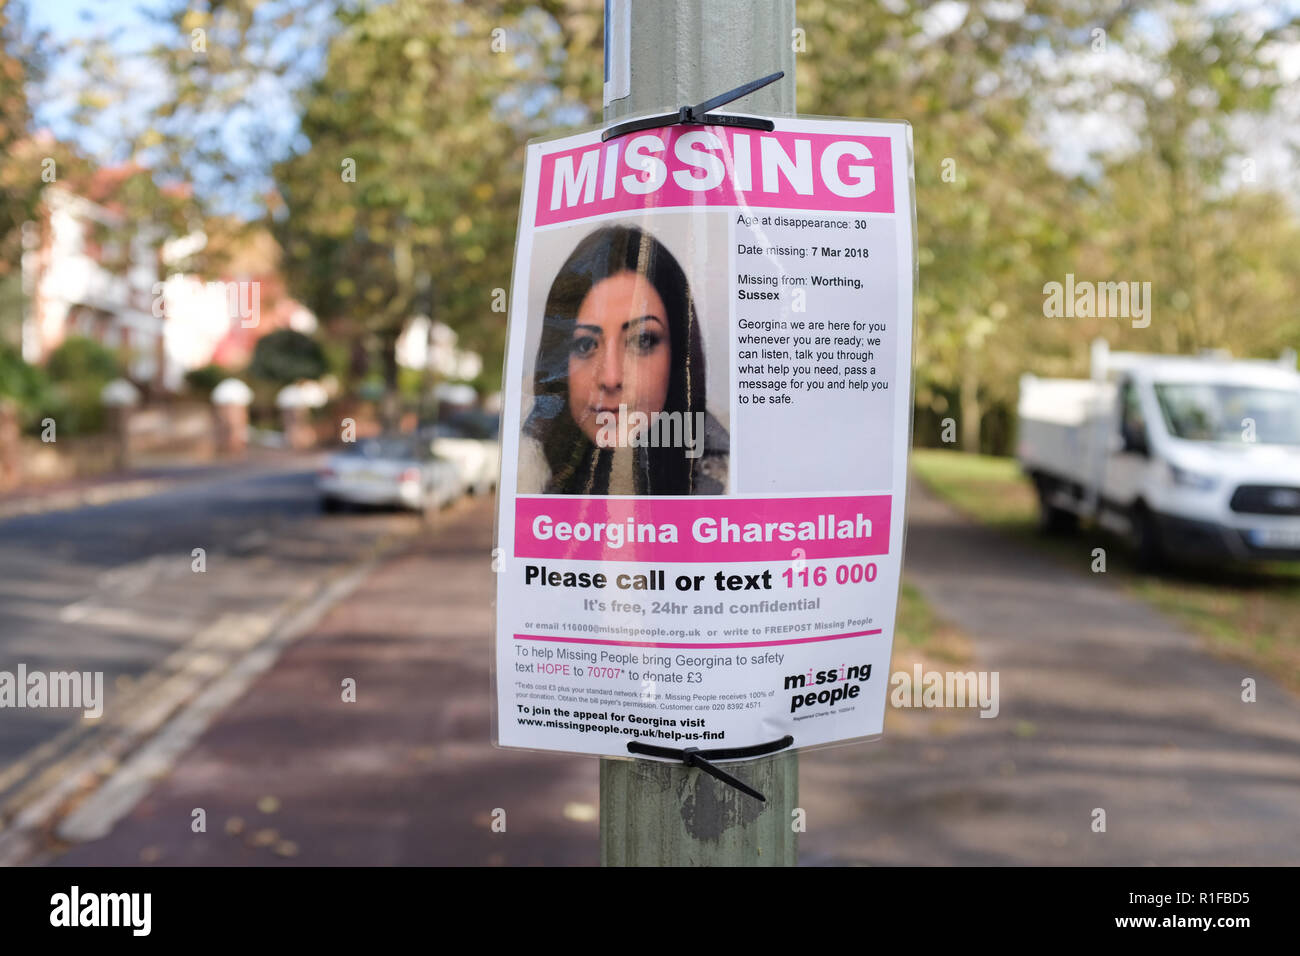 Missing Person Stock Photos & Missing Person Stock Images